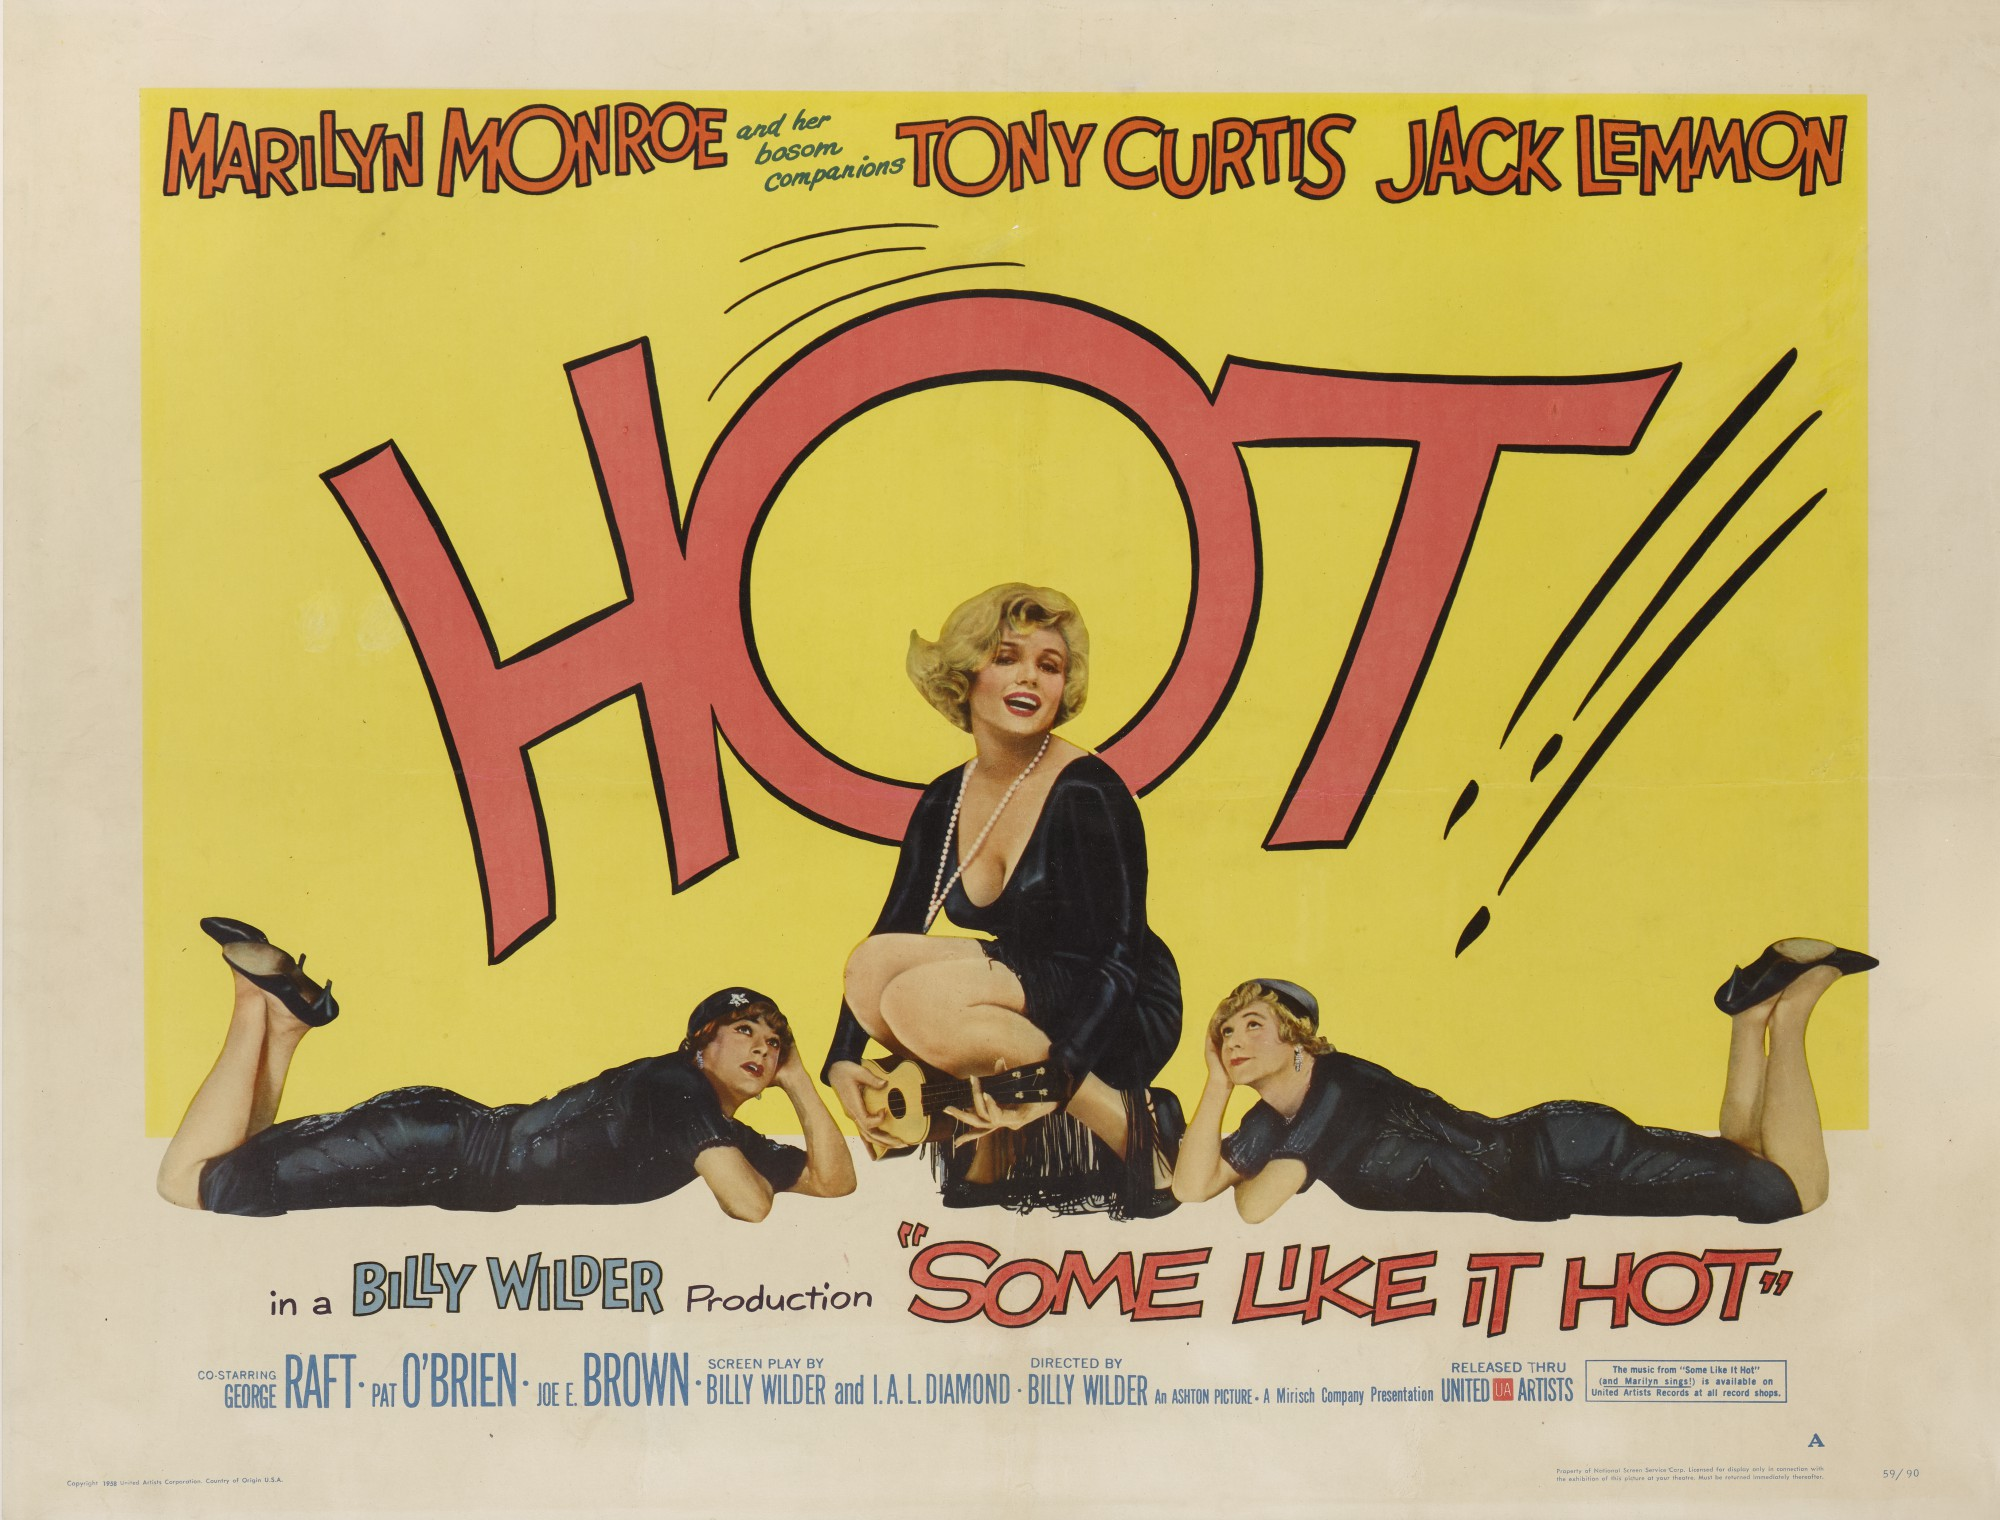 SOME LIKE IT HOT (1959) POSTER, US